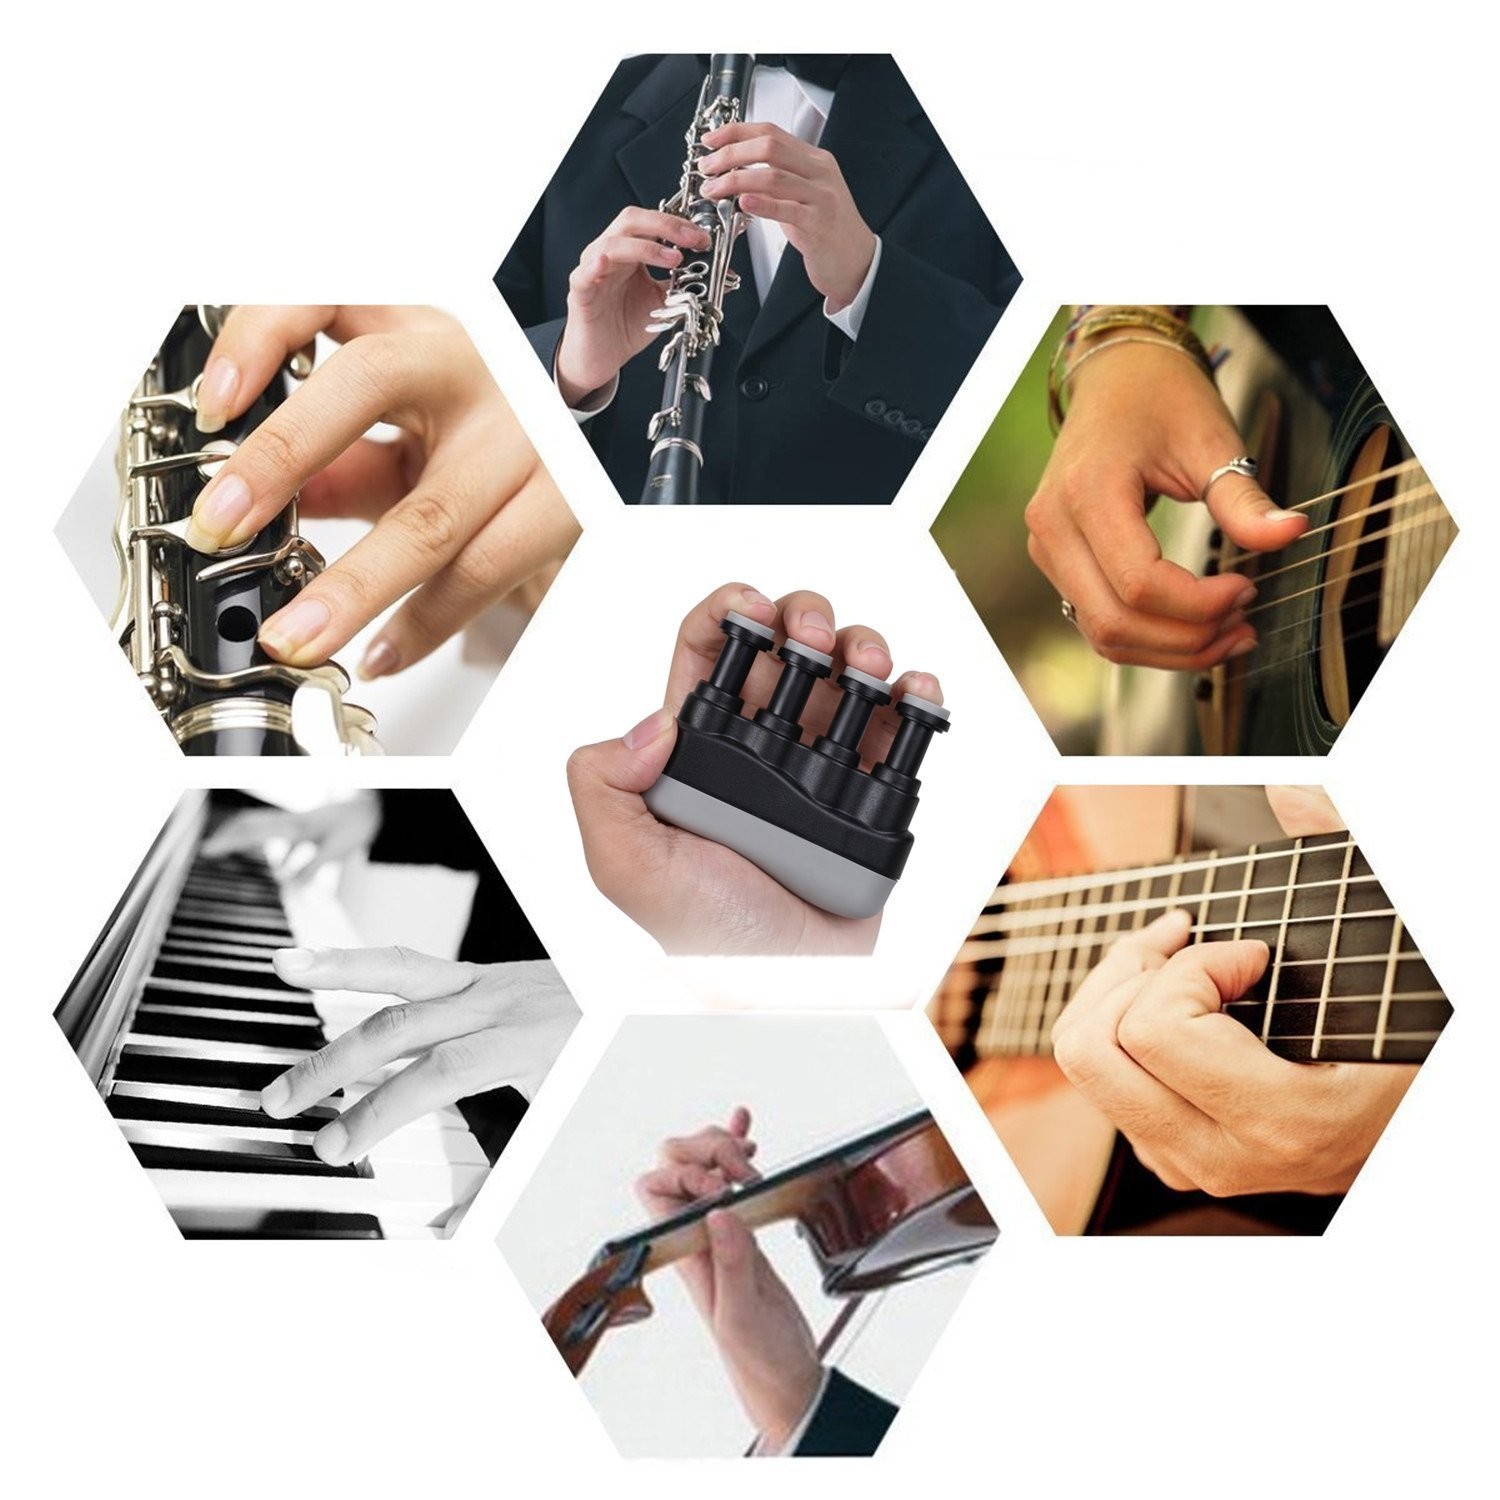 IVYRISE Finger Training Exercise Hand Wrist Strengthener Finger Grip Tension Adjustment Strength Training Equipment for Guitar, Piano, Golf, Tennis & Physical Therapy, Black by IVYRISE (Image #6)